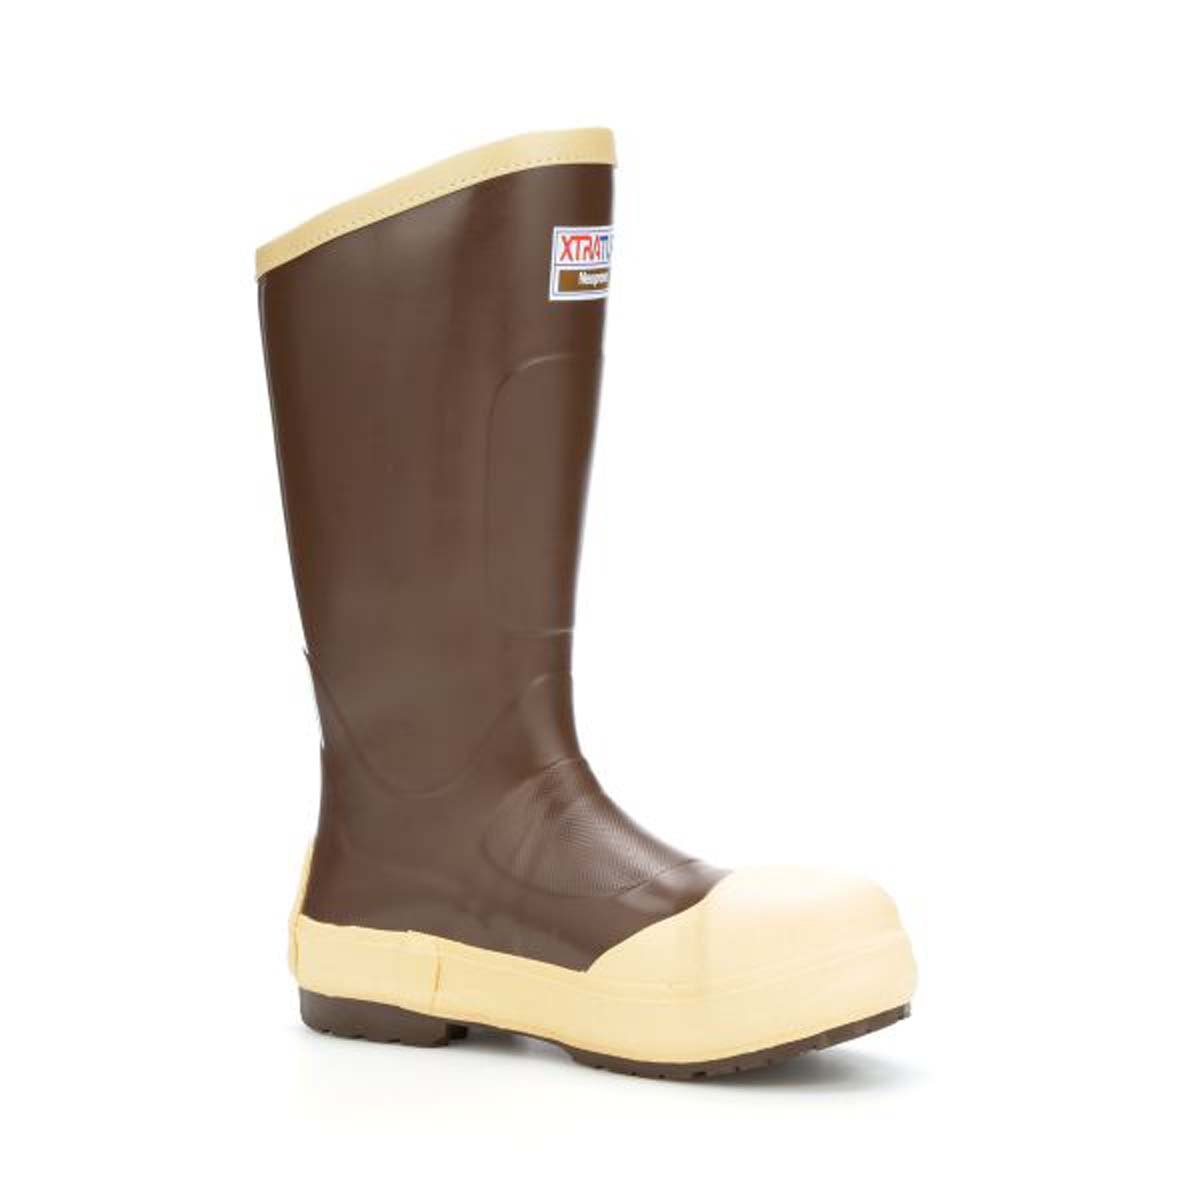 Xtratuf Men's Legacy 2.0 15 in. Composite Toe Copper Tan Size 11 Safety Boot